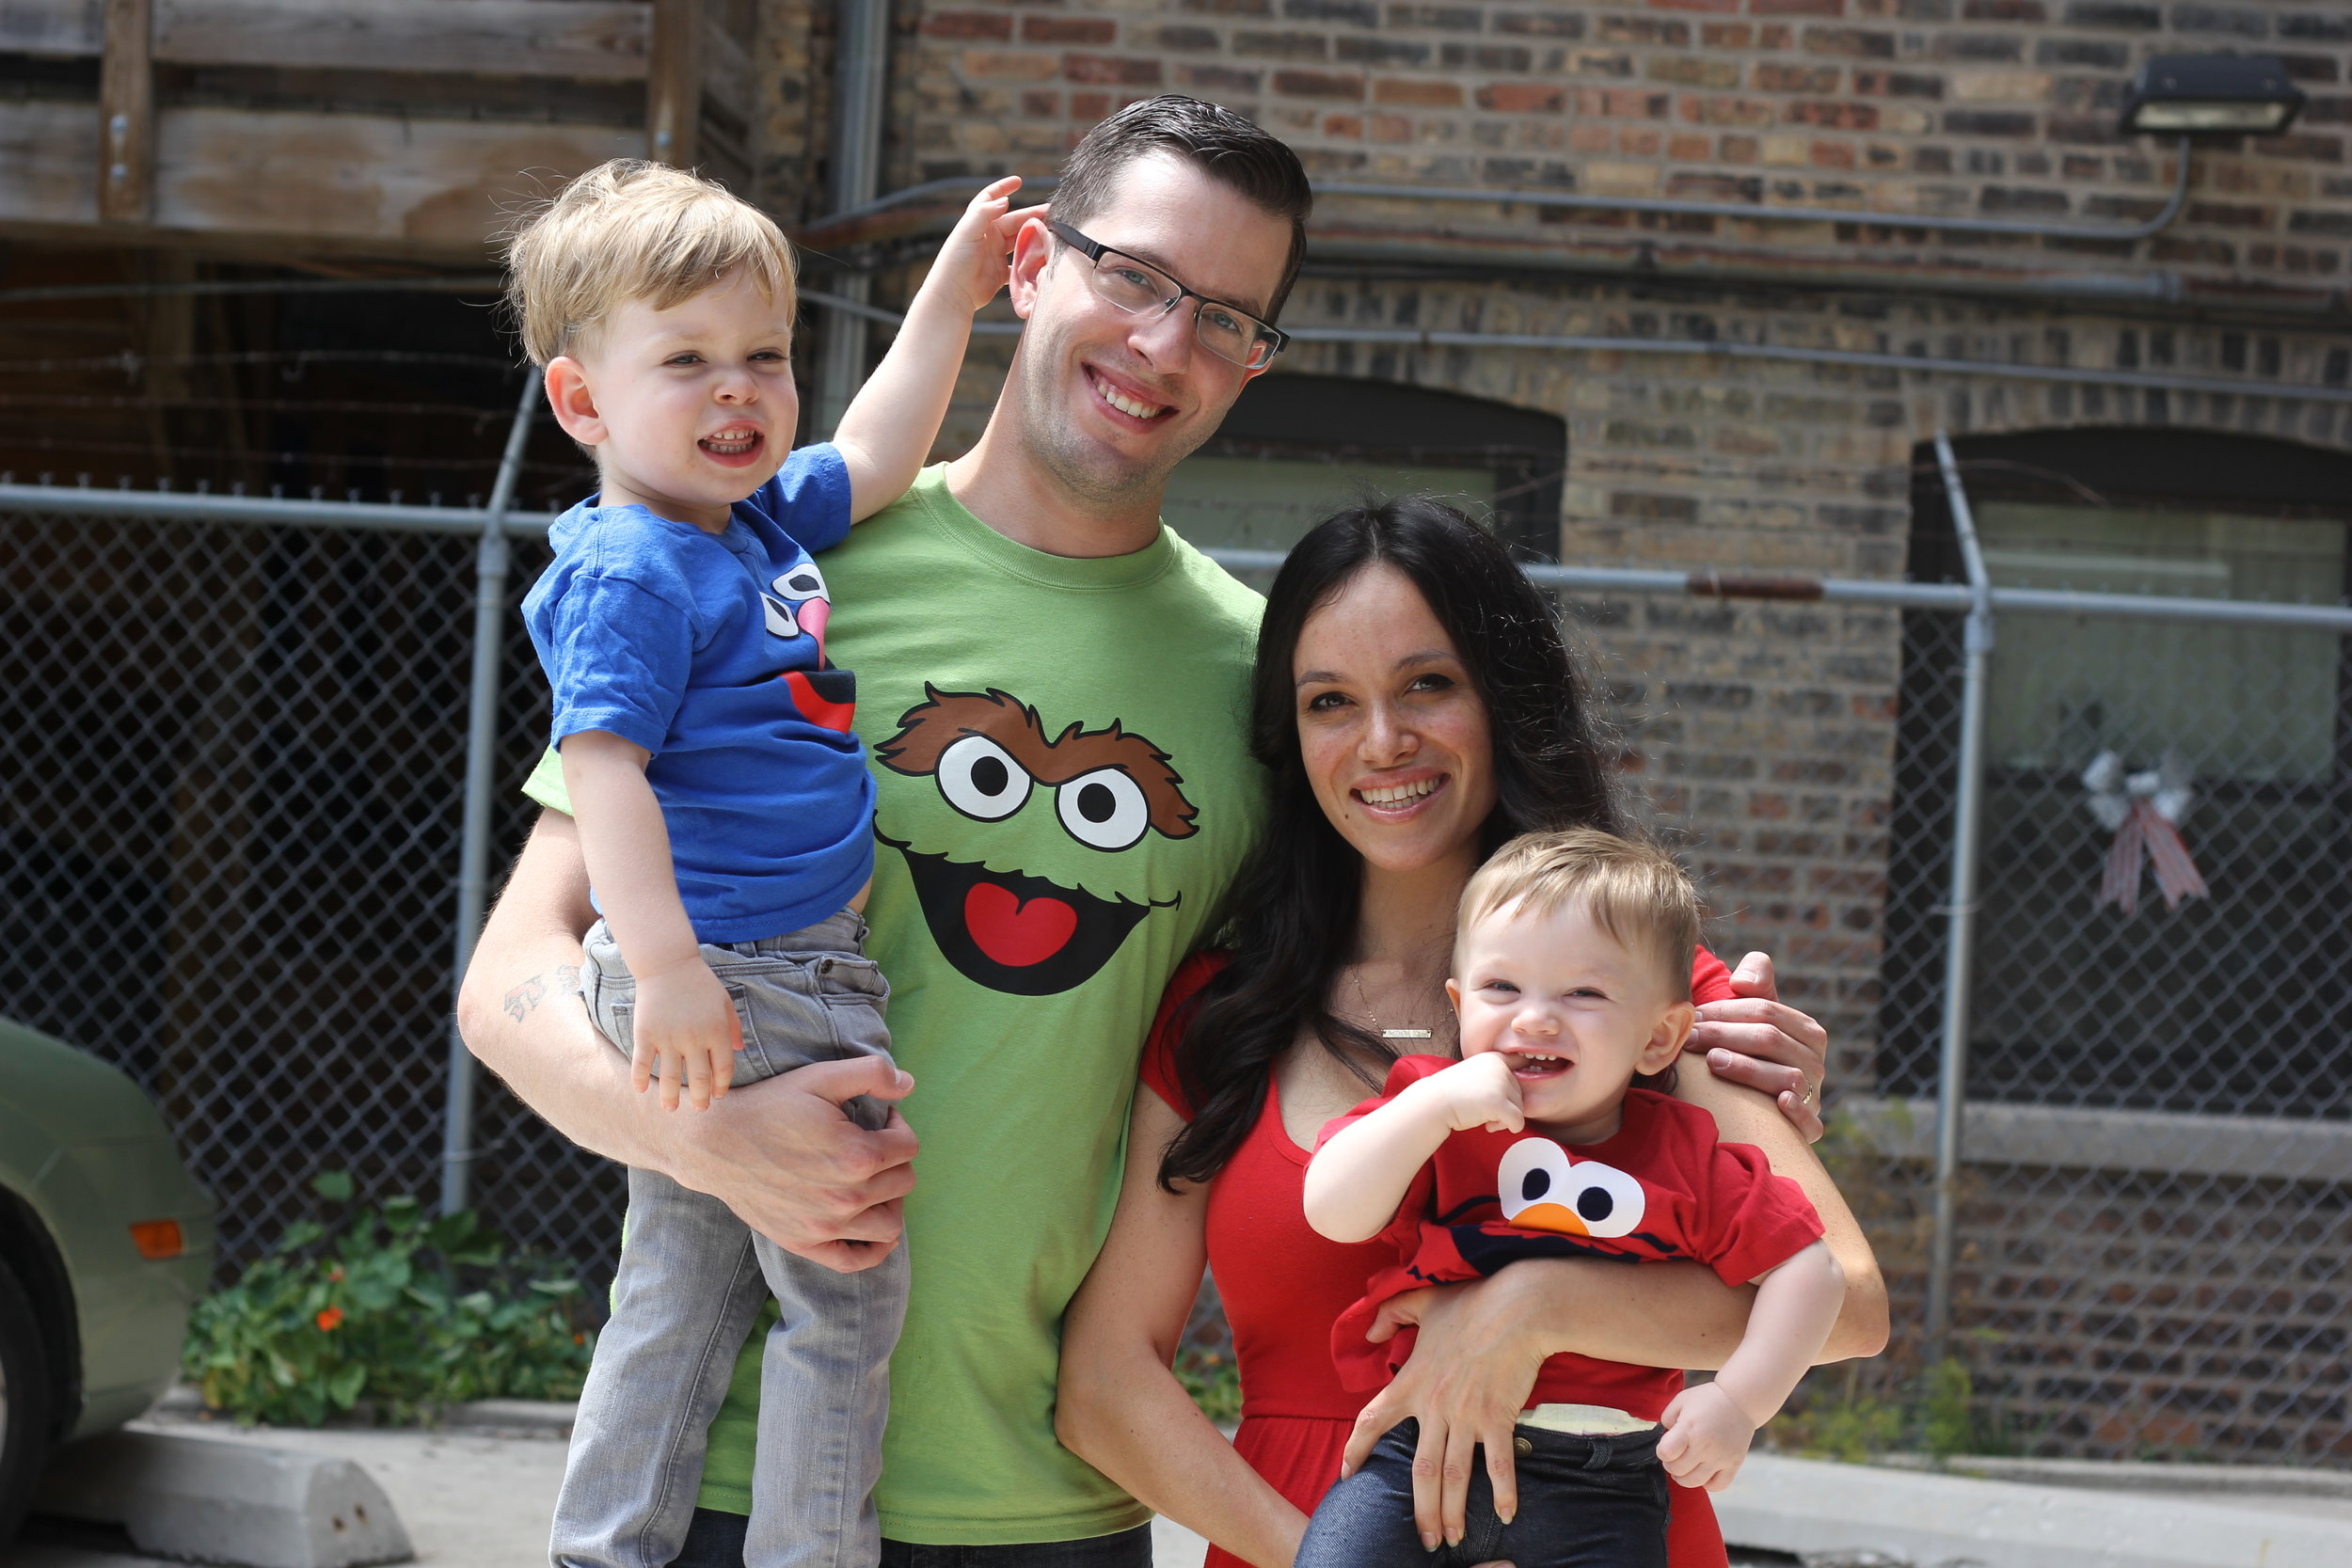 The Sesame Street birthday family